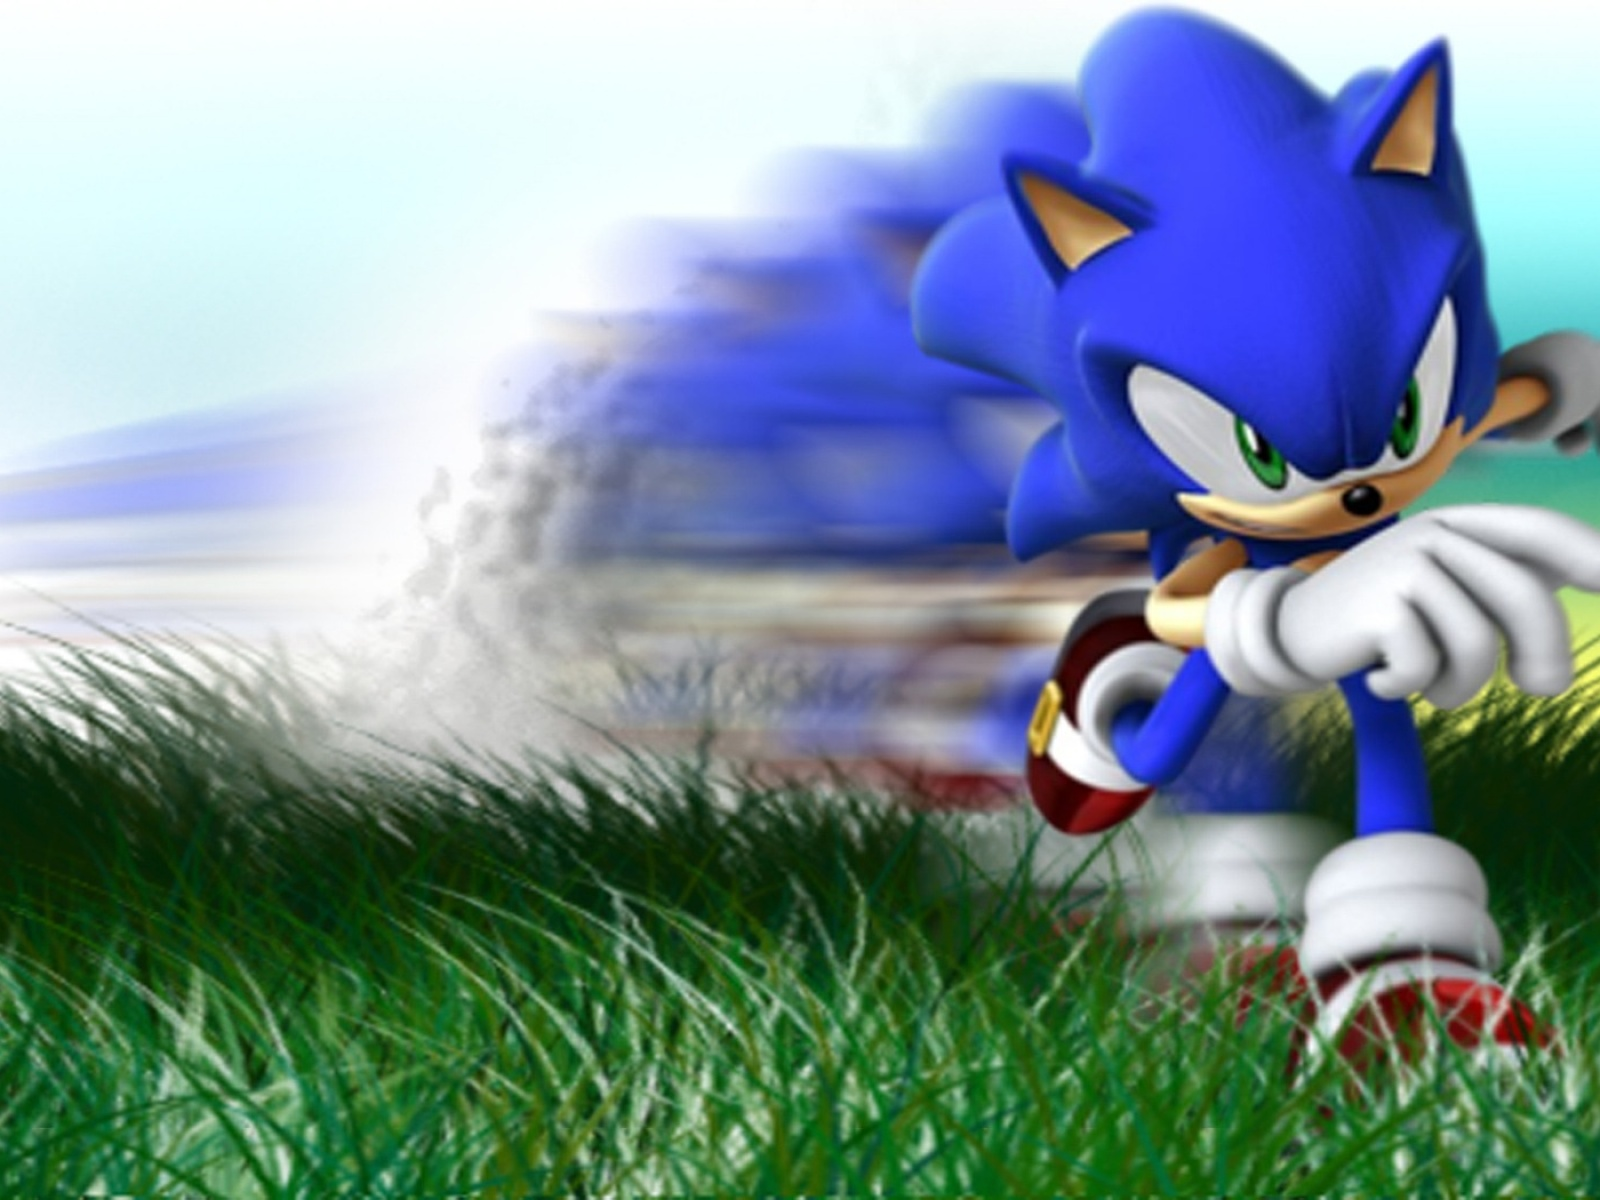 Full Hd Wallpaper For Laptop Fond D Ecran Sonic Speed Wallpaper